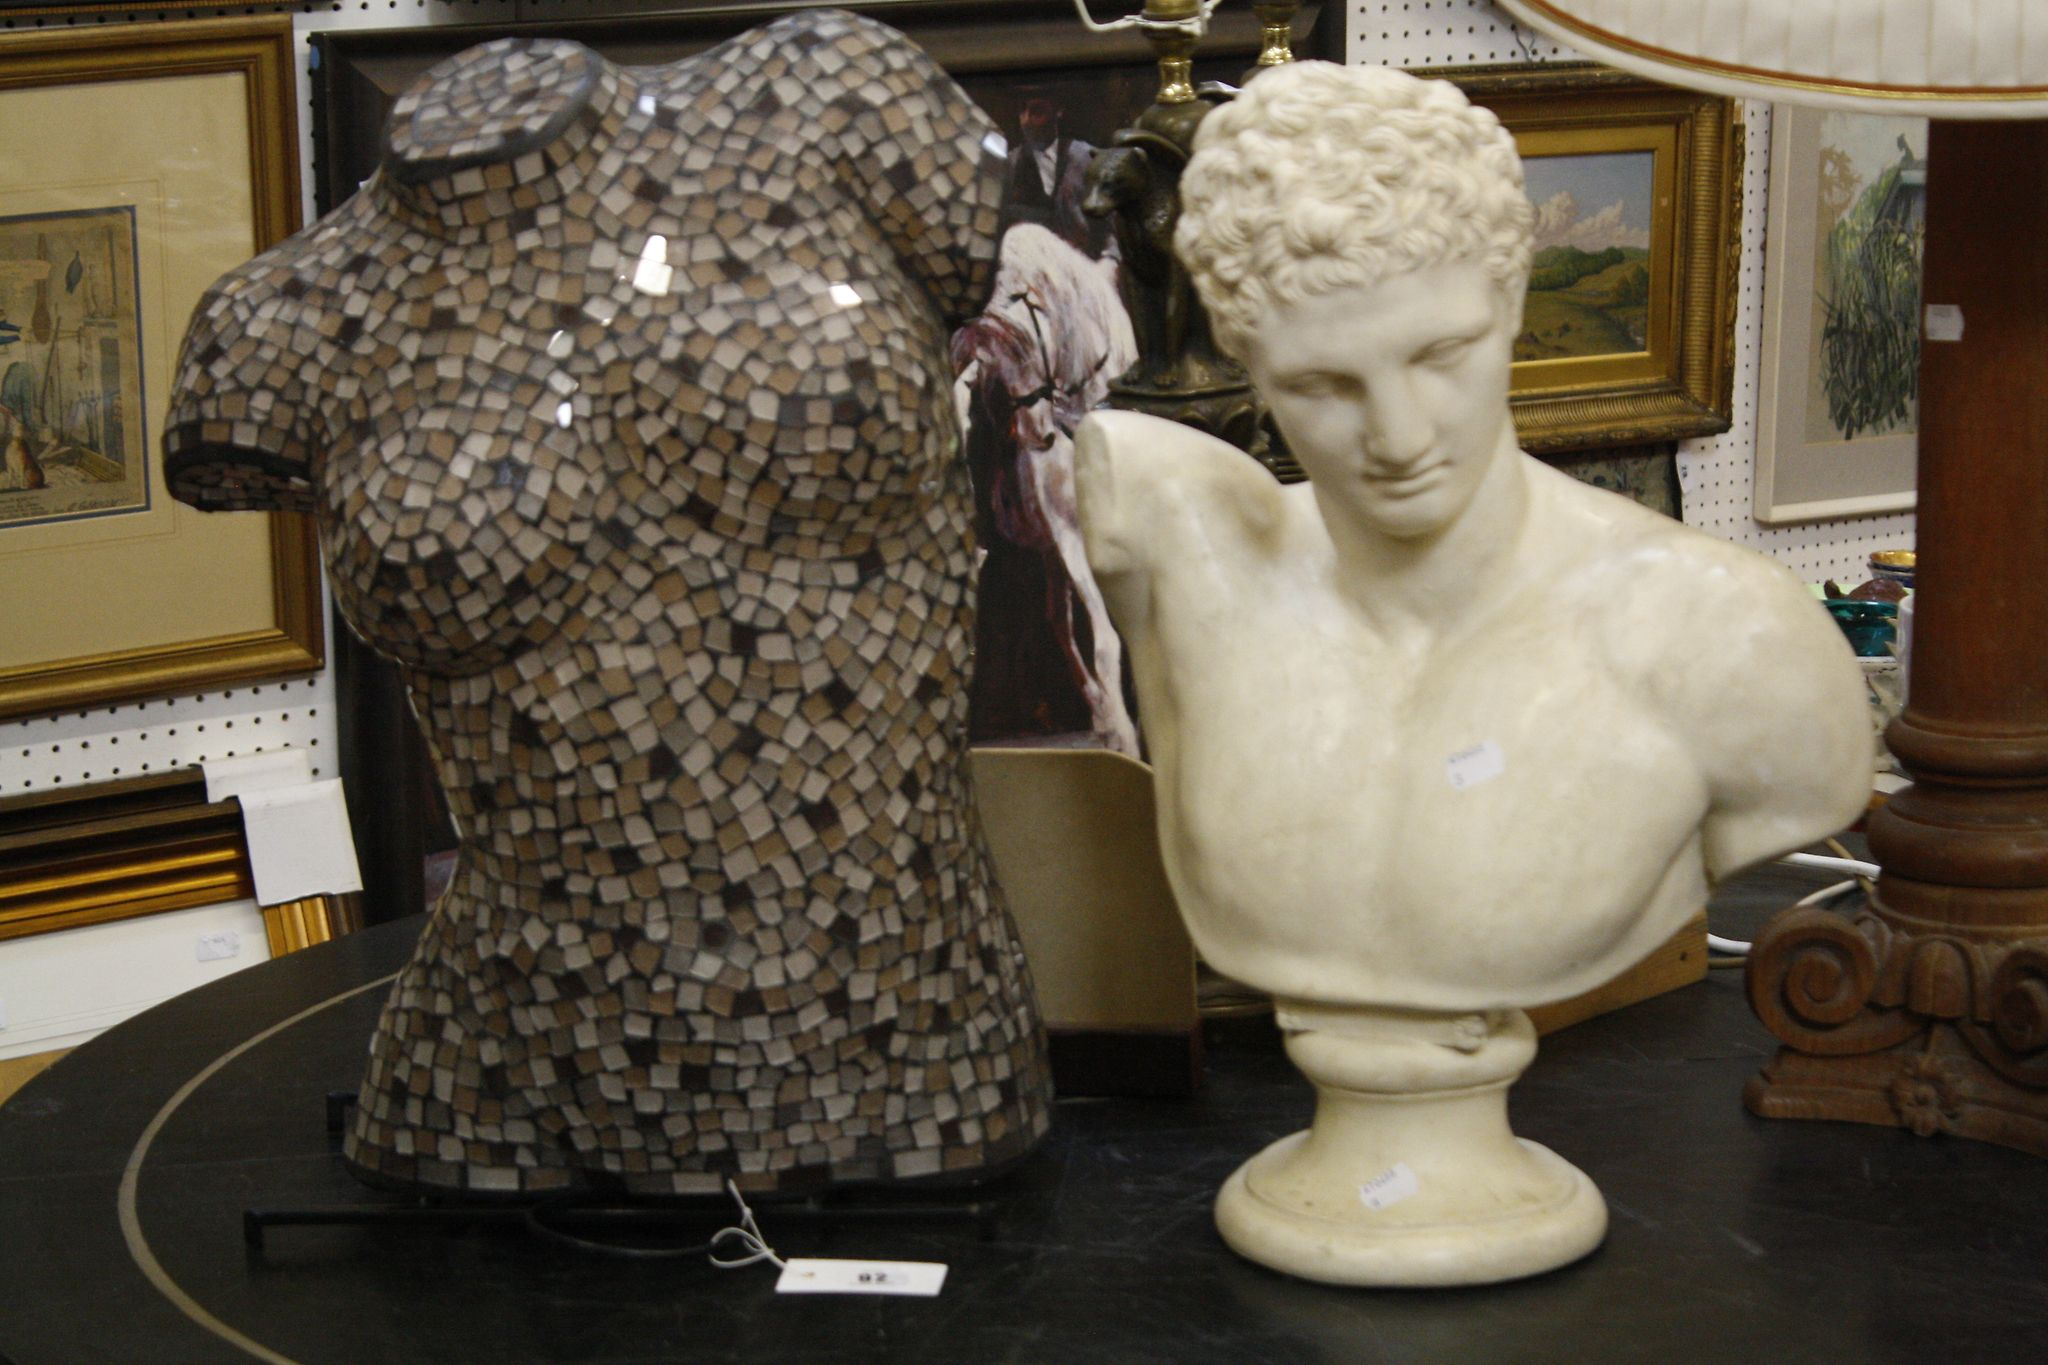 A mosaic bust of a lady table lamp